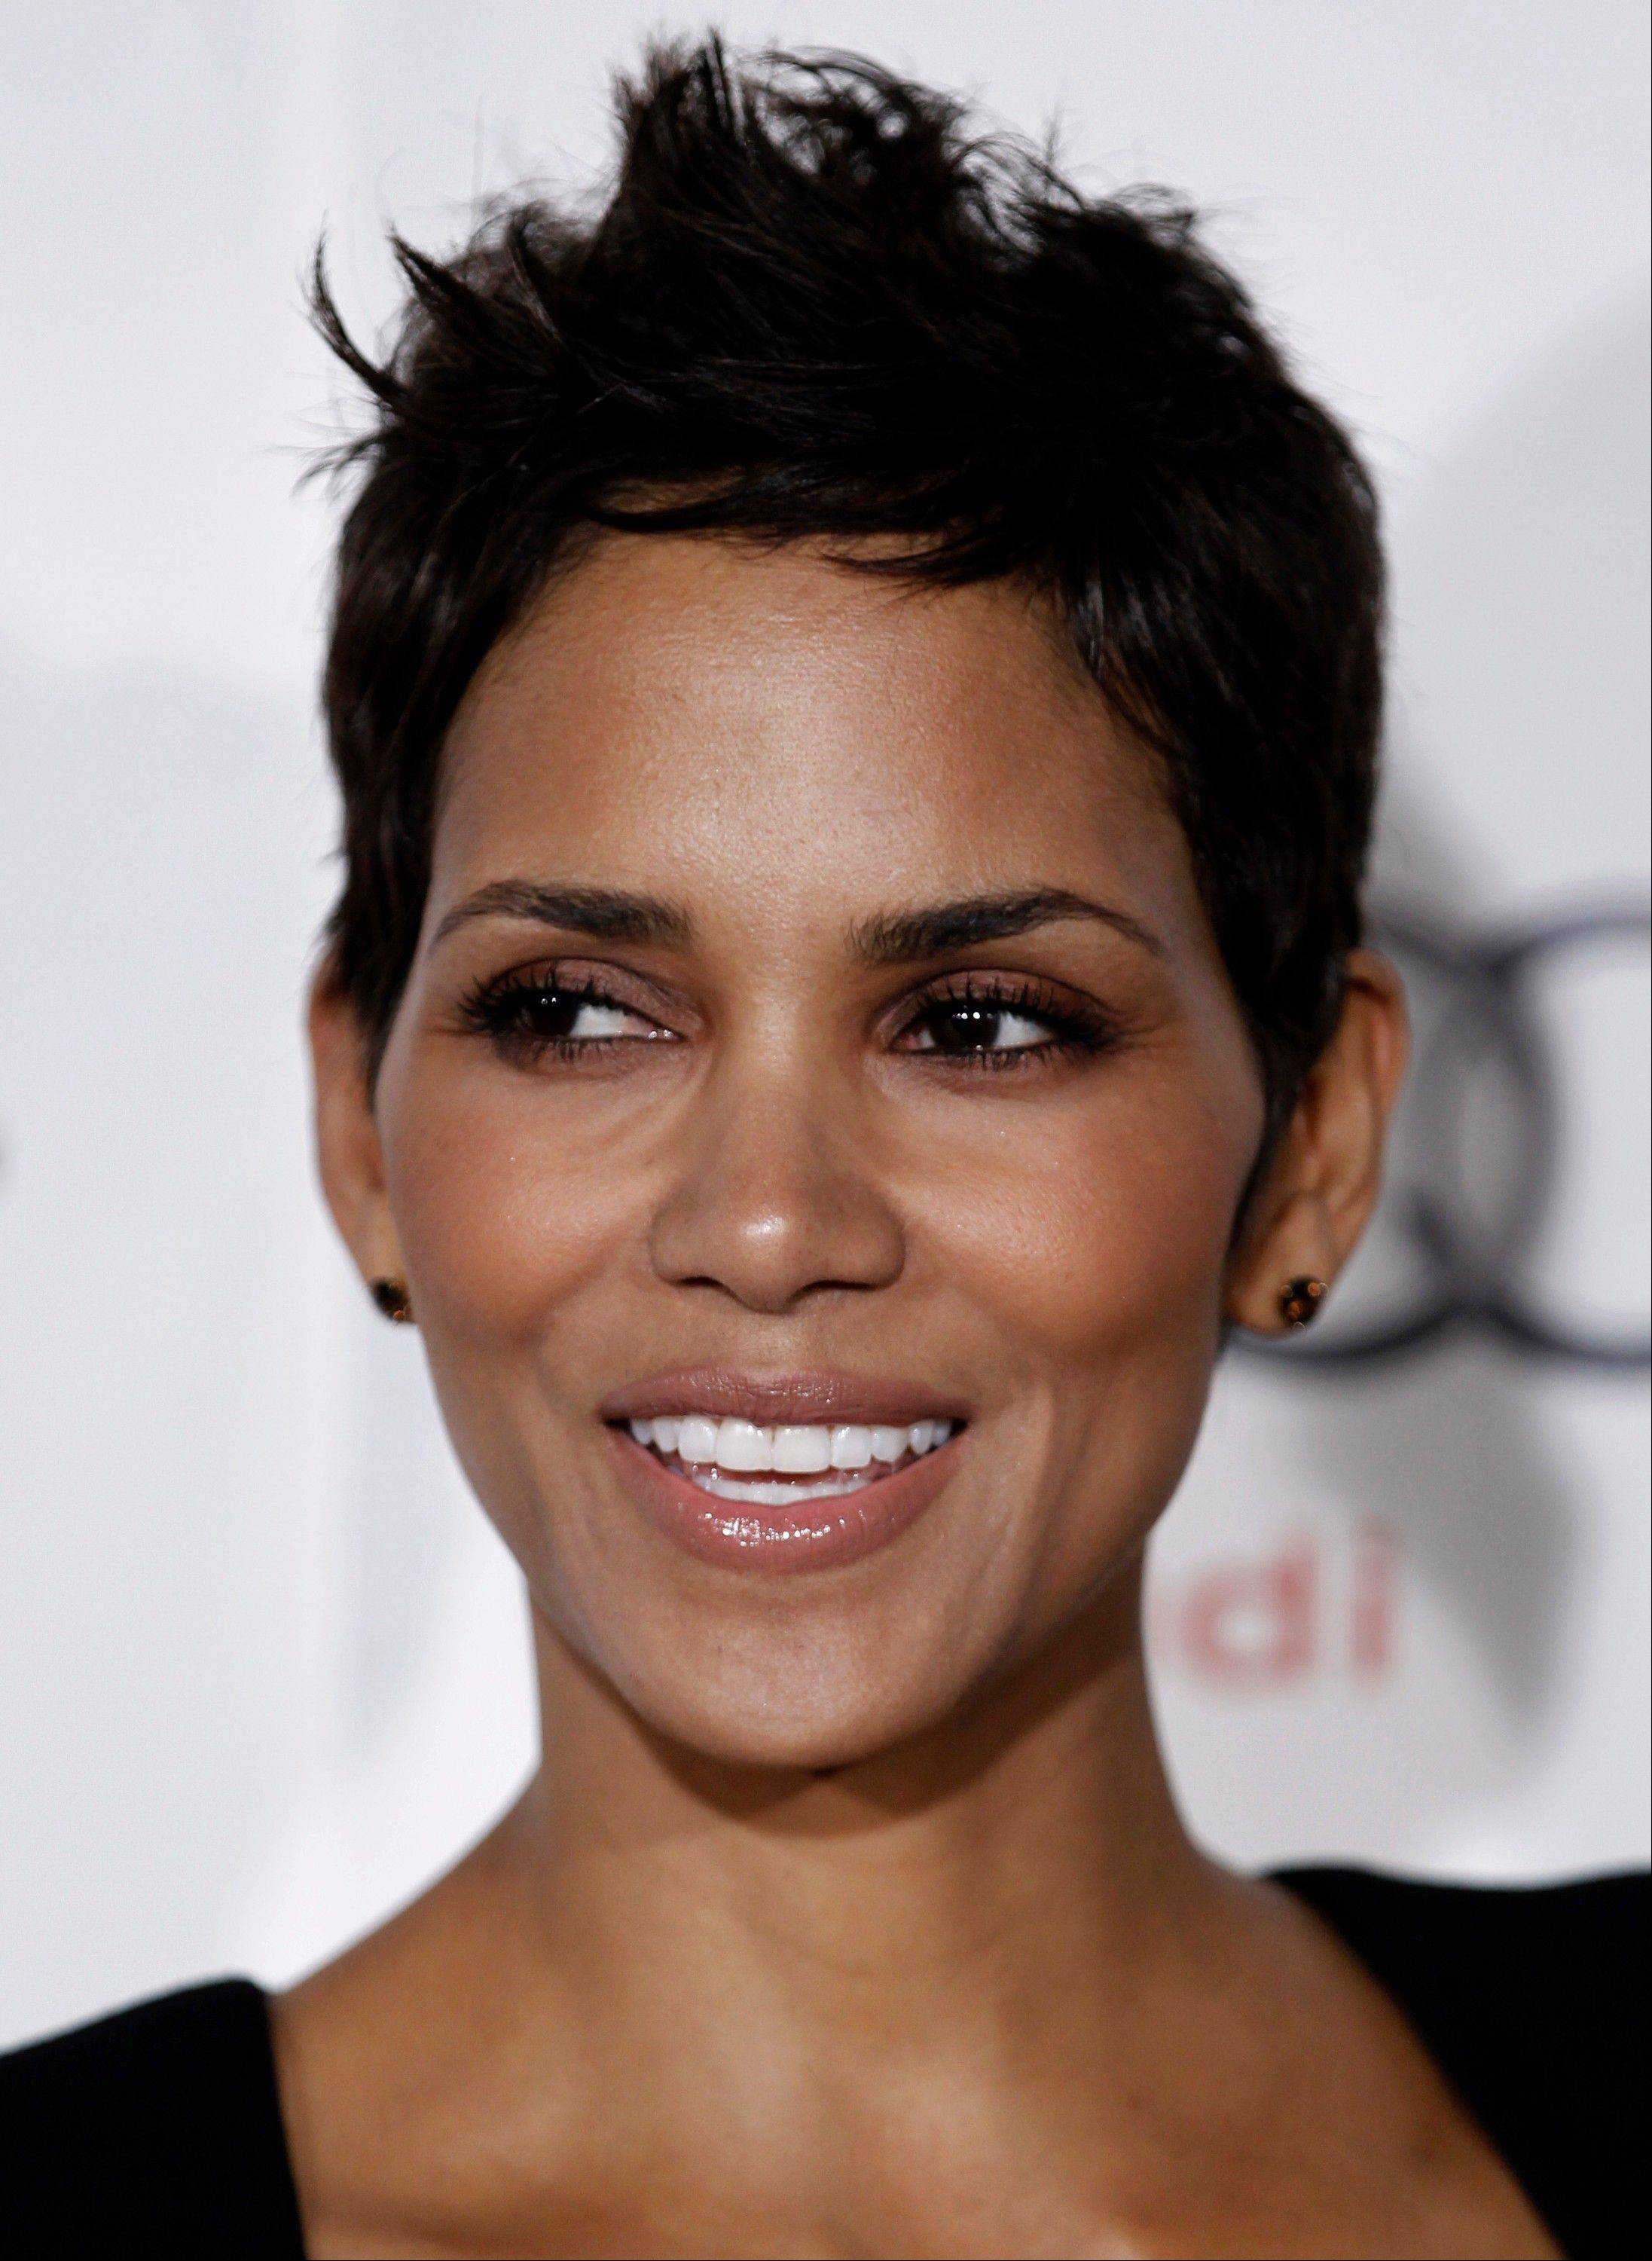 Actress Halle Berry was taken to a hospital after falling and striking her head on concrete late Tuesday, but was later discharged.